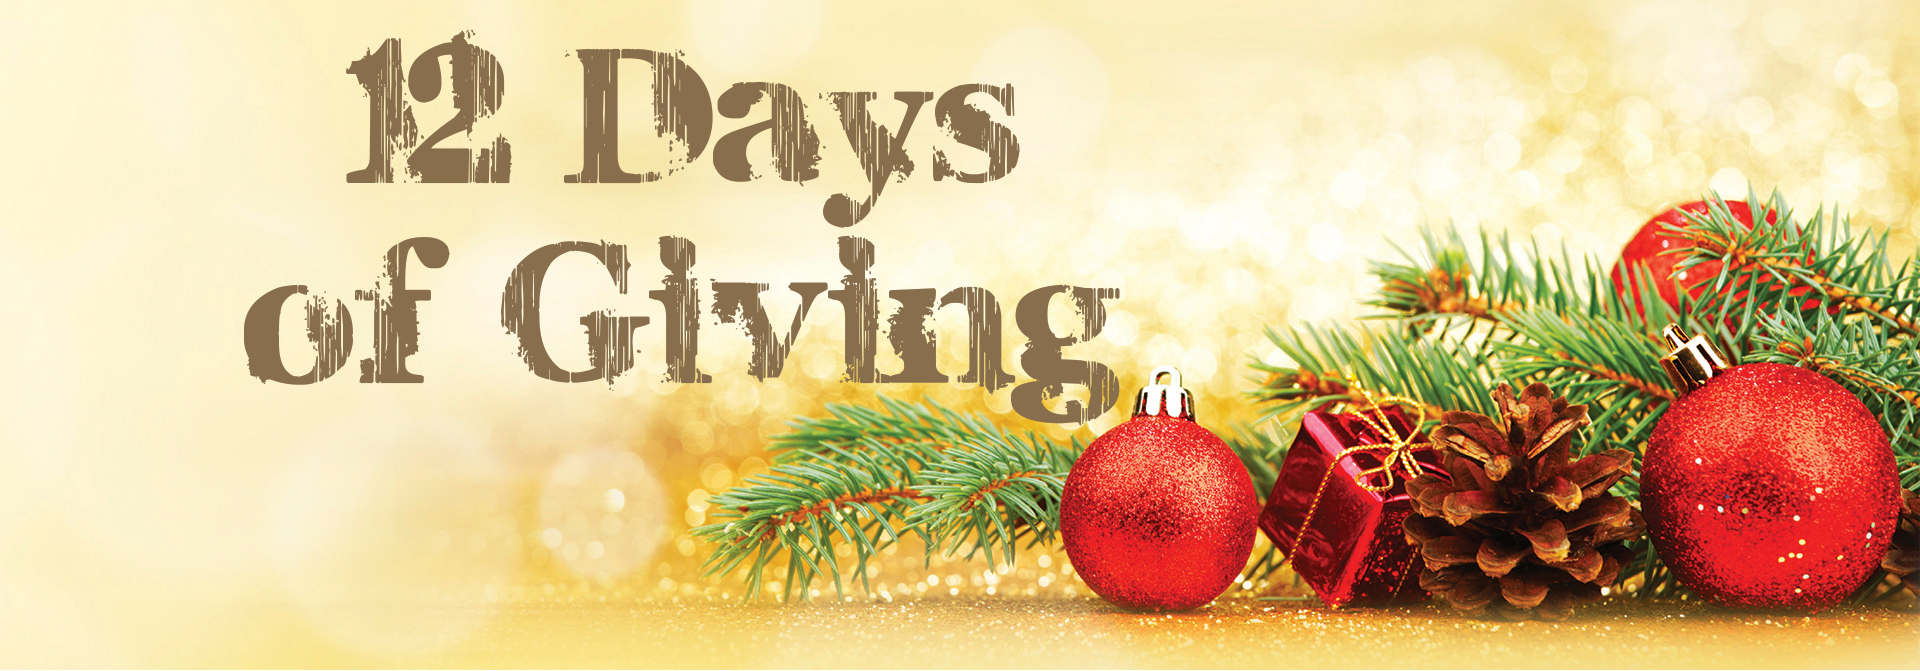 12 Days of Giving Christmas ornaments and pine cones